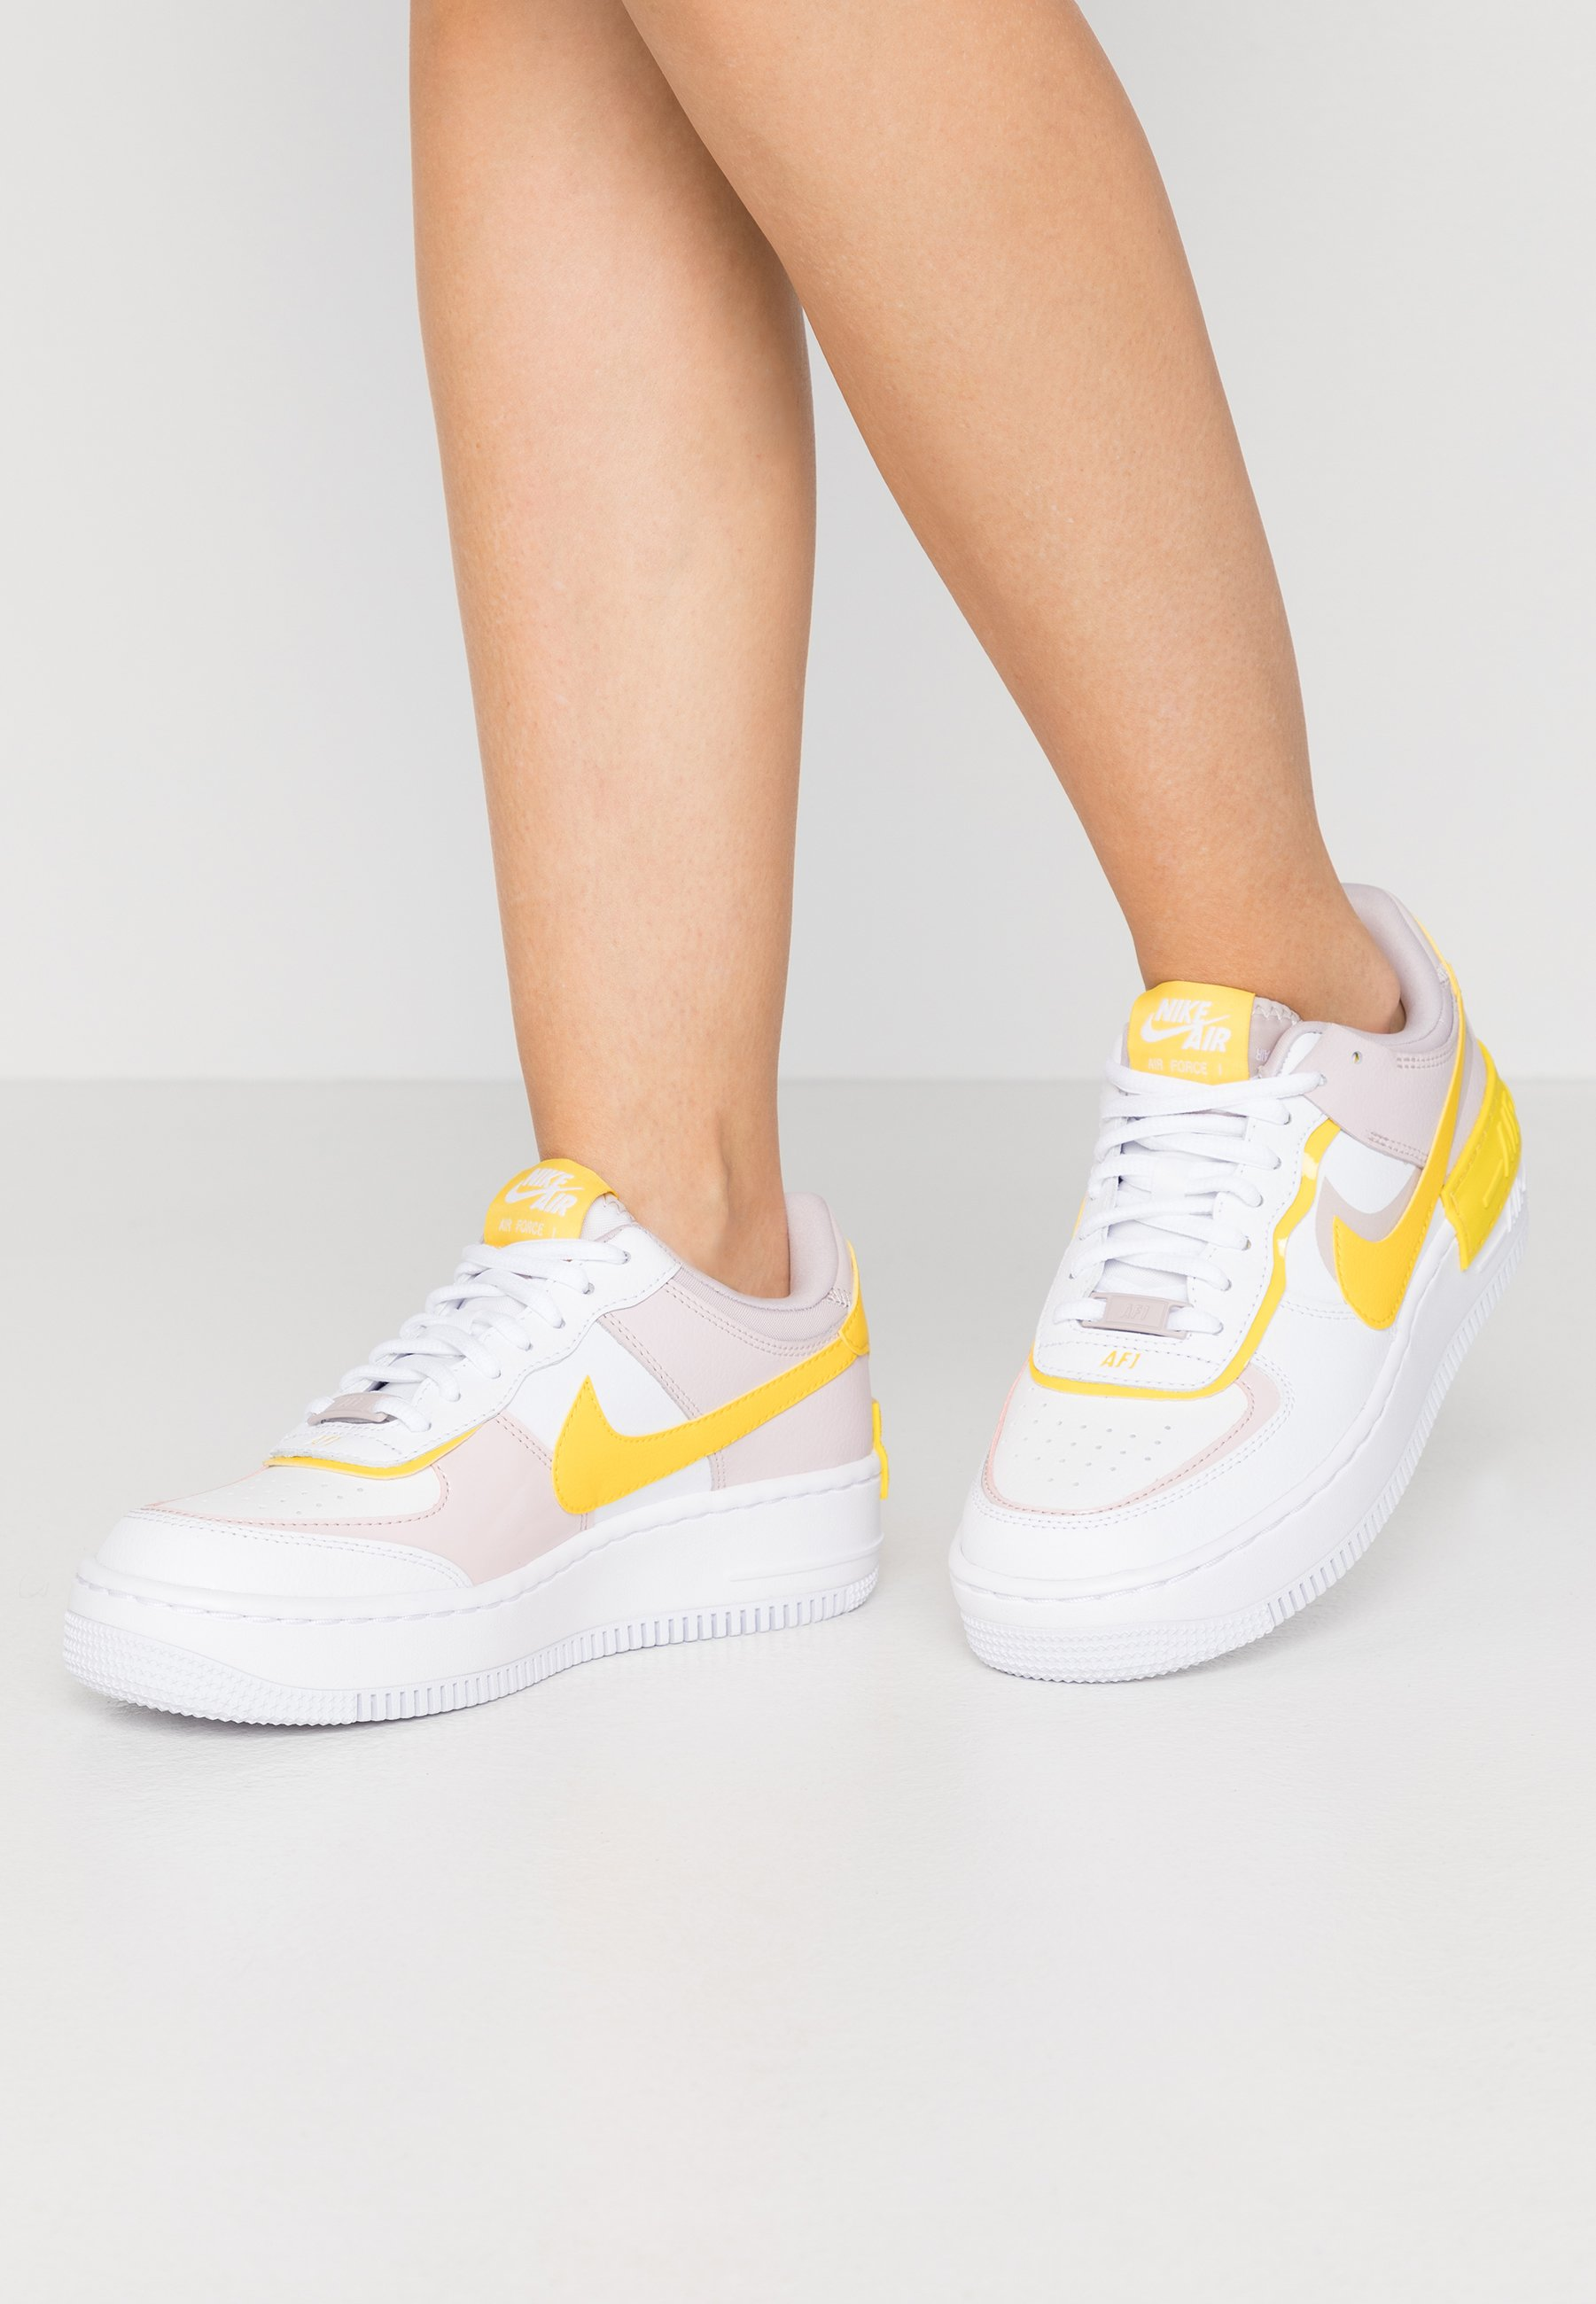 Nike Sportswear Air Force 1 Shadow Trainers White Speed Yellow Photon Dust Platinum Violet White Zalando Co Uk Sneakers air force 1 shadow di nike. air force 1 shadow trainers white speed yellow photon dust platinum violet